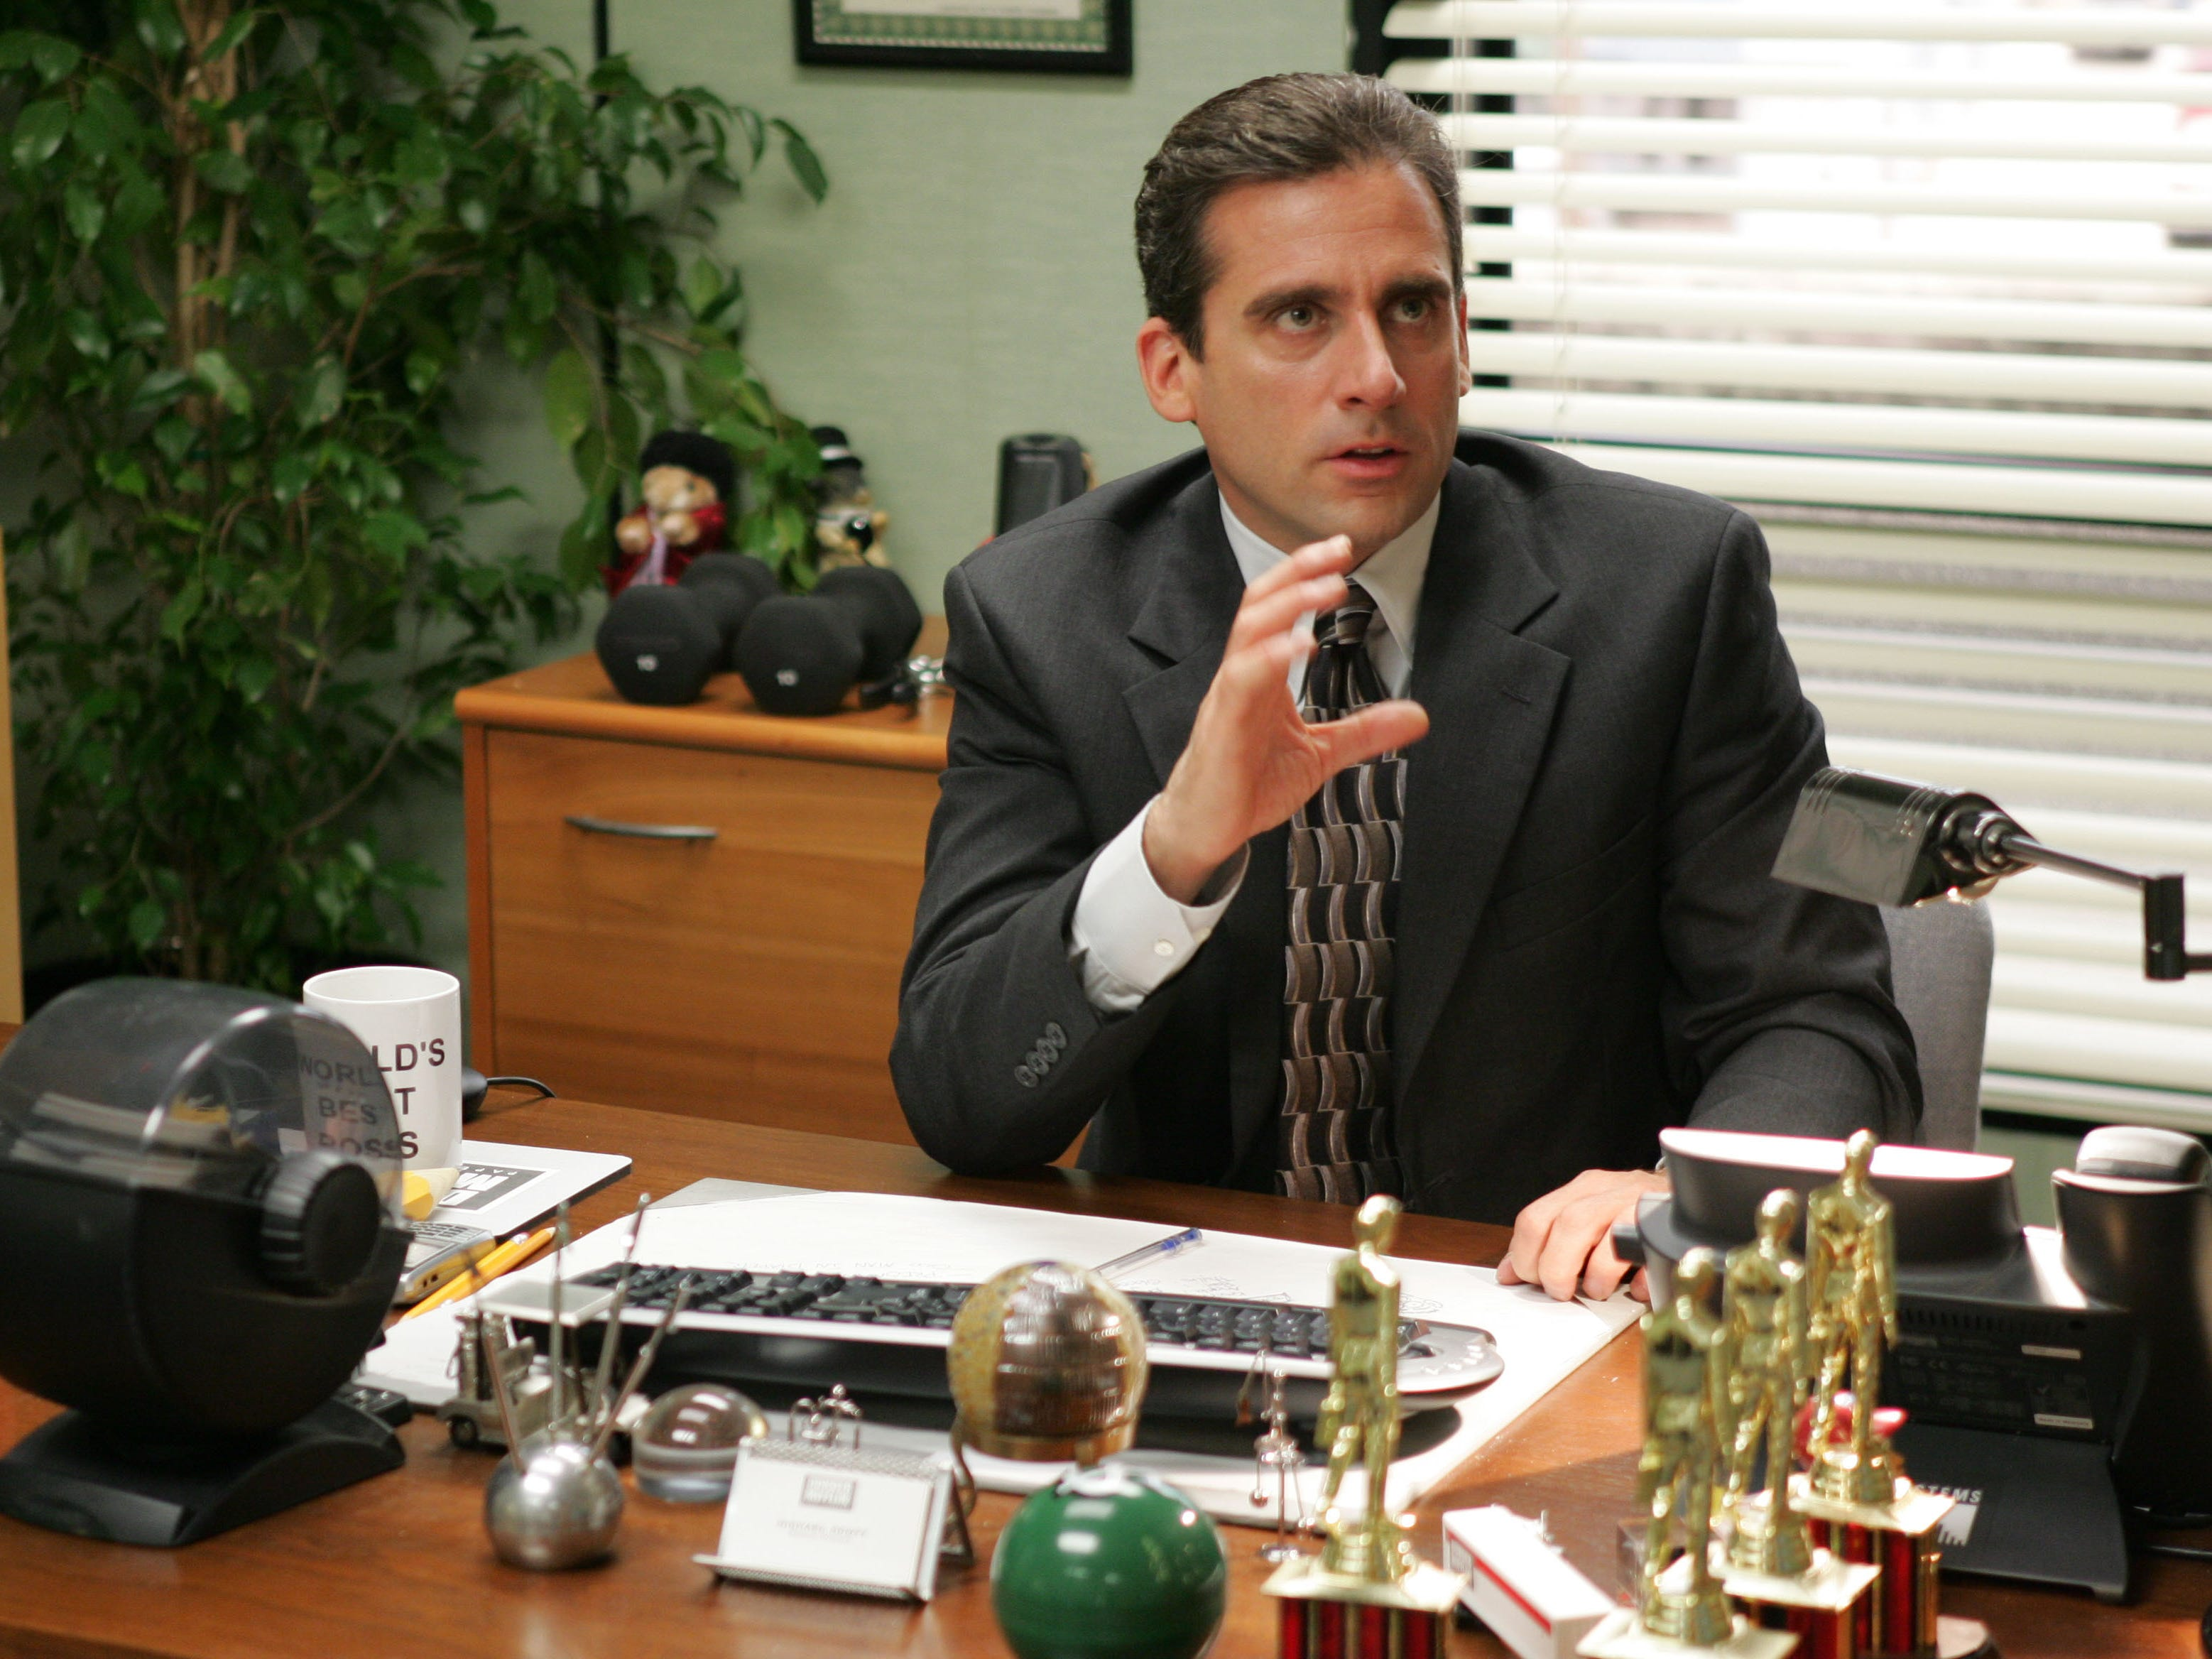 """Pictured: Steve Carell as Michael Scott in """"The Office"""""""